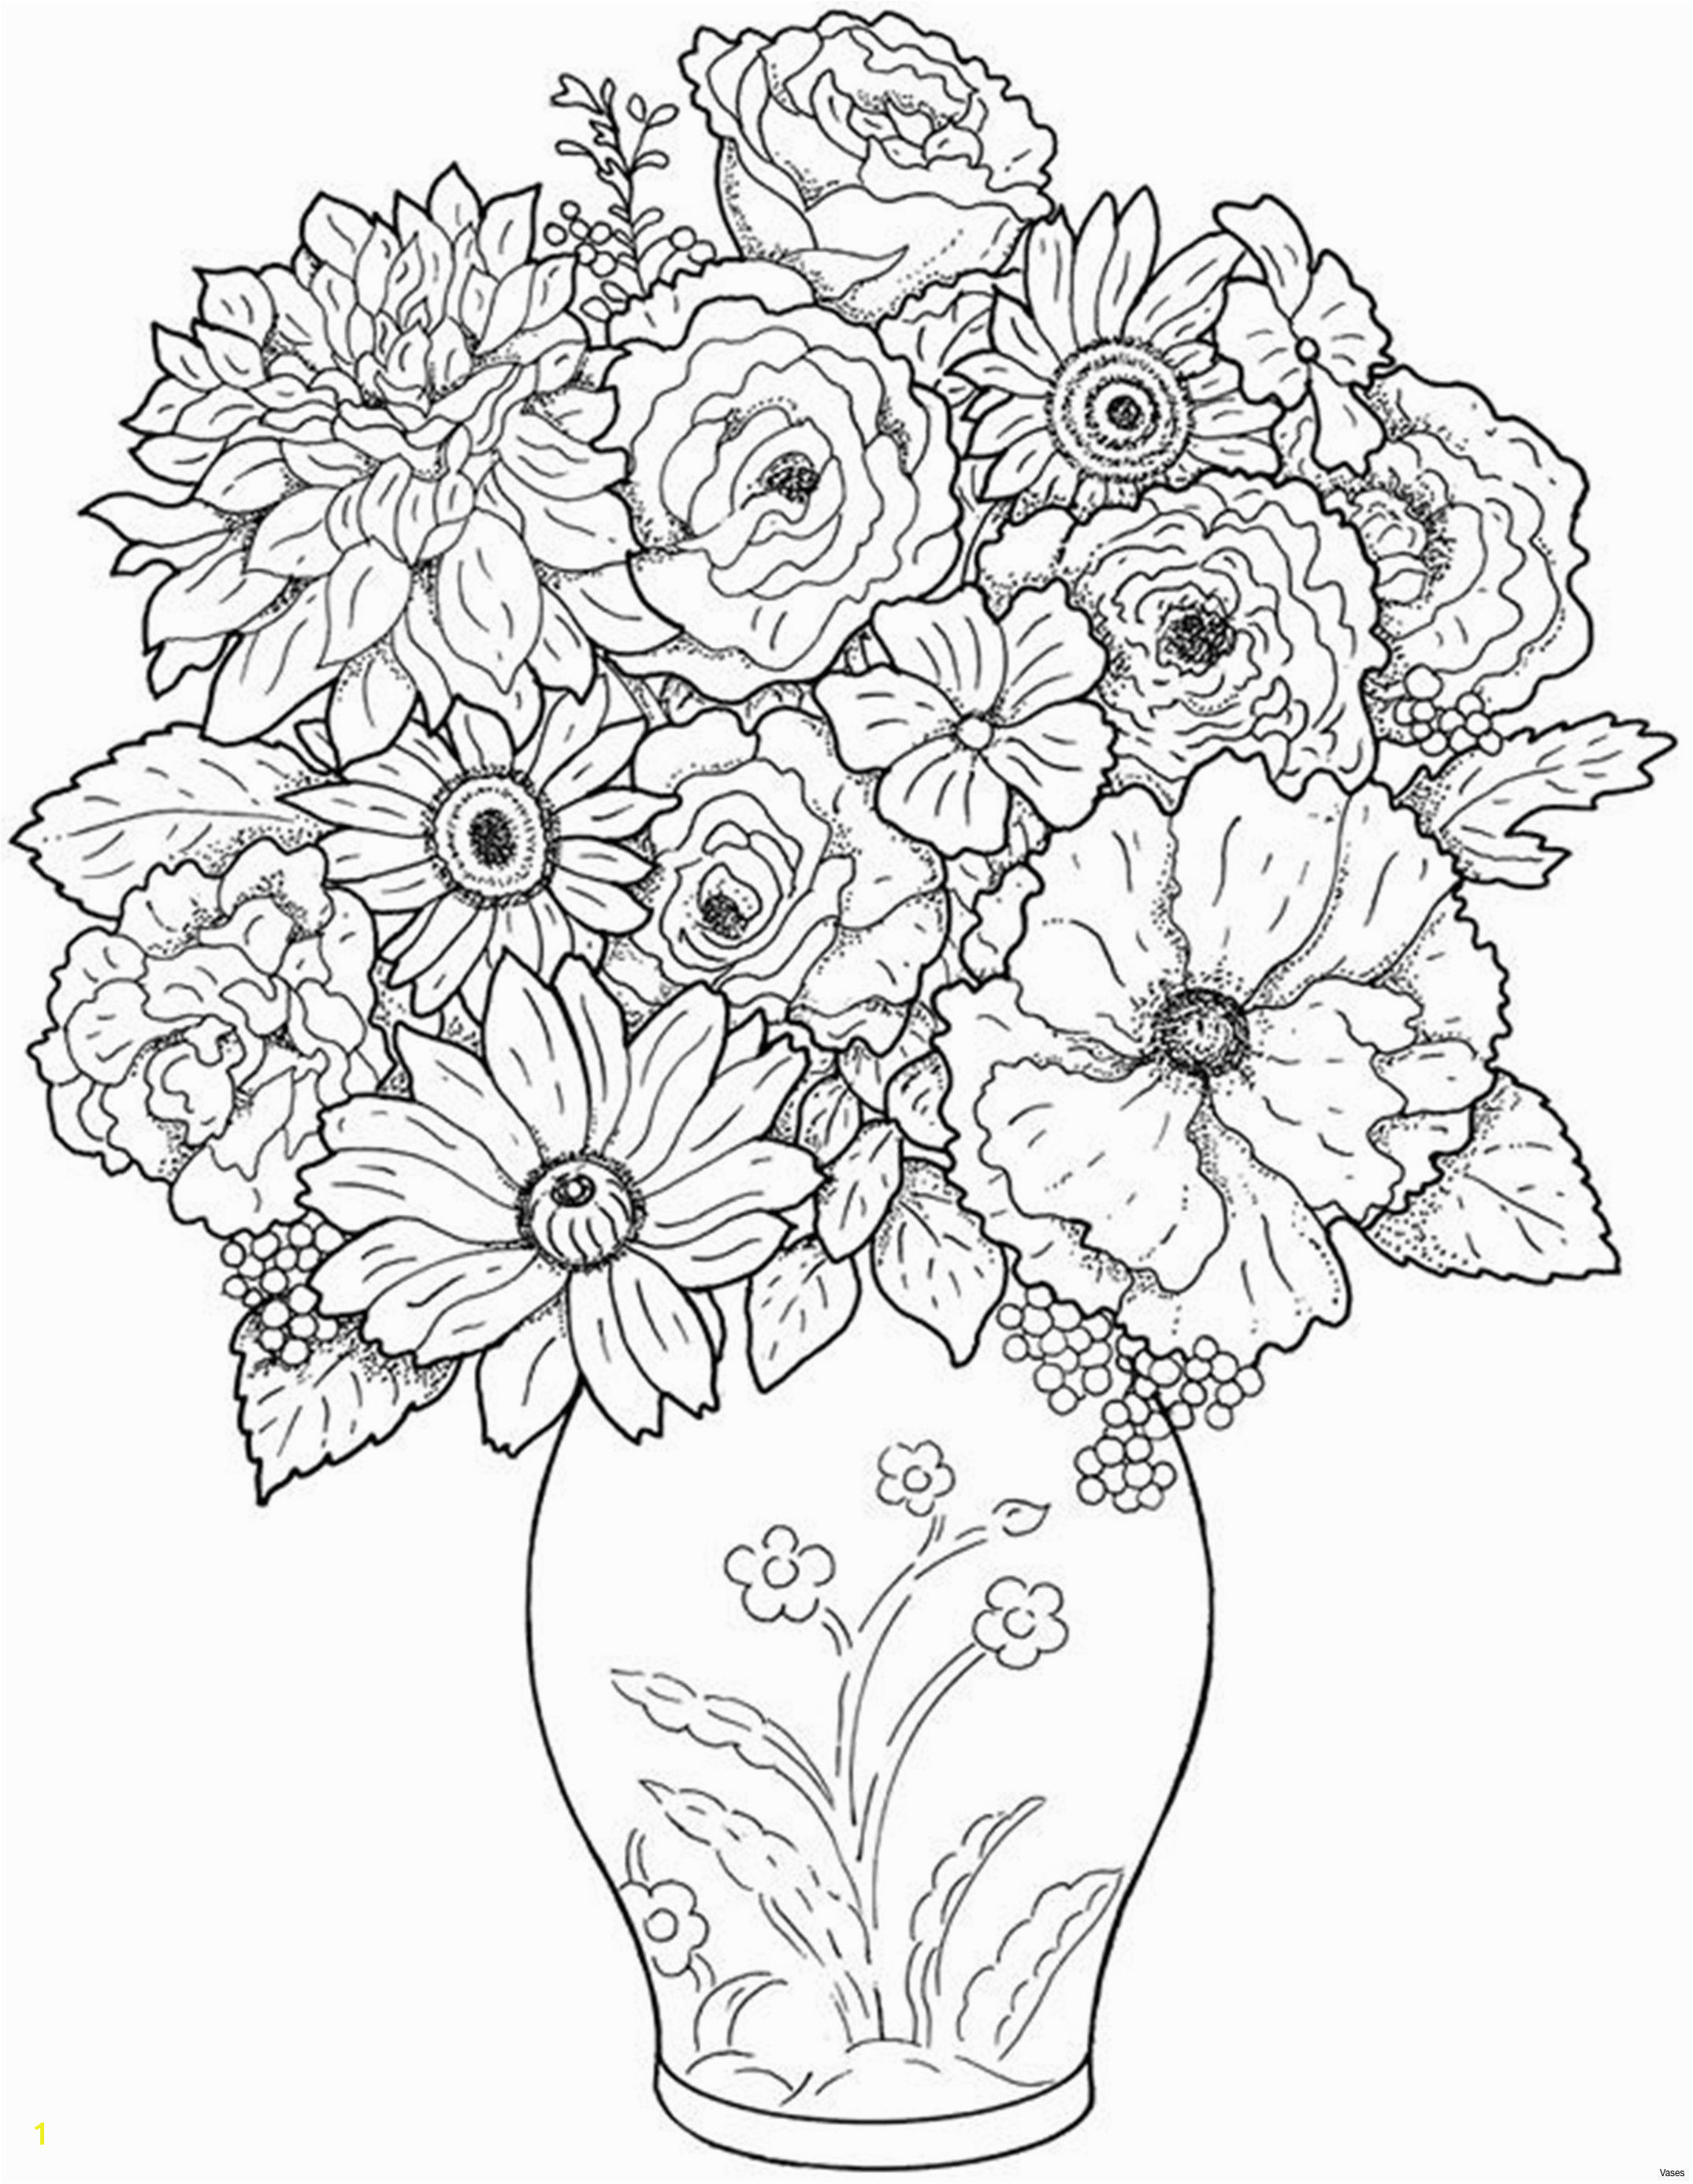 Food Coloring Flowers Best Cool Vases Flower Vase Coloring Page Pages Flowers In A Top I 0d